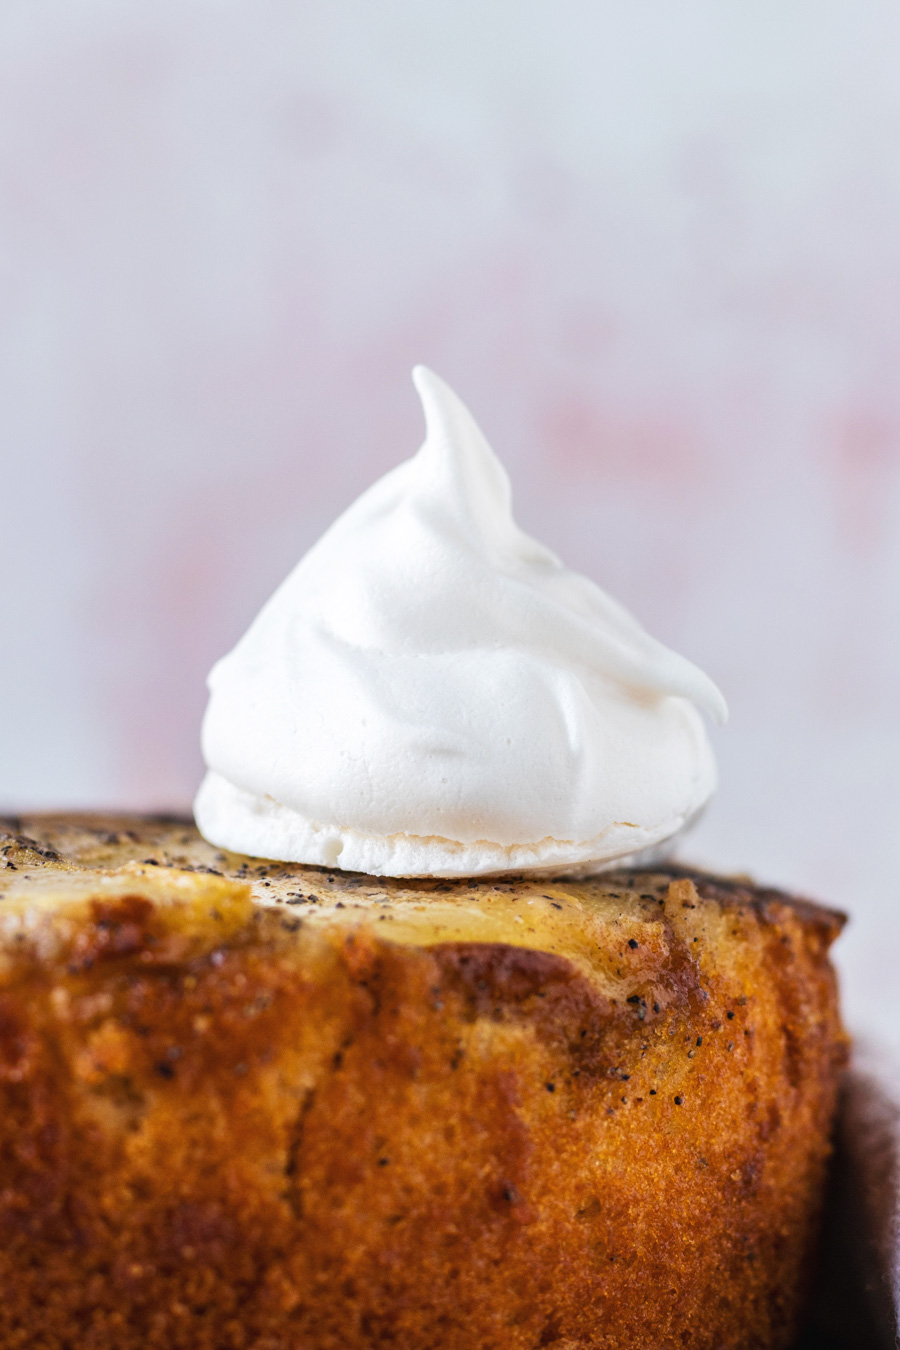 Vegan Cardamom Pear Upside-Down Cake